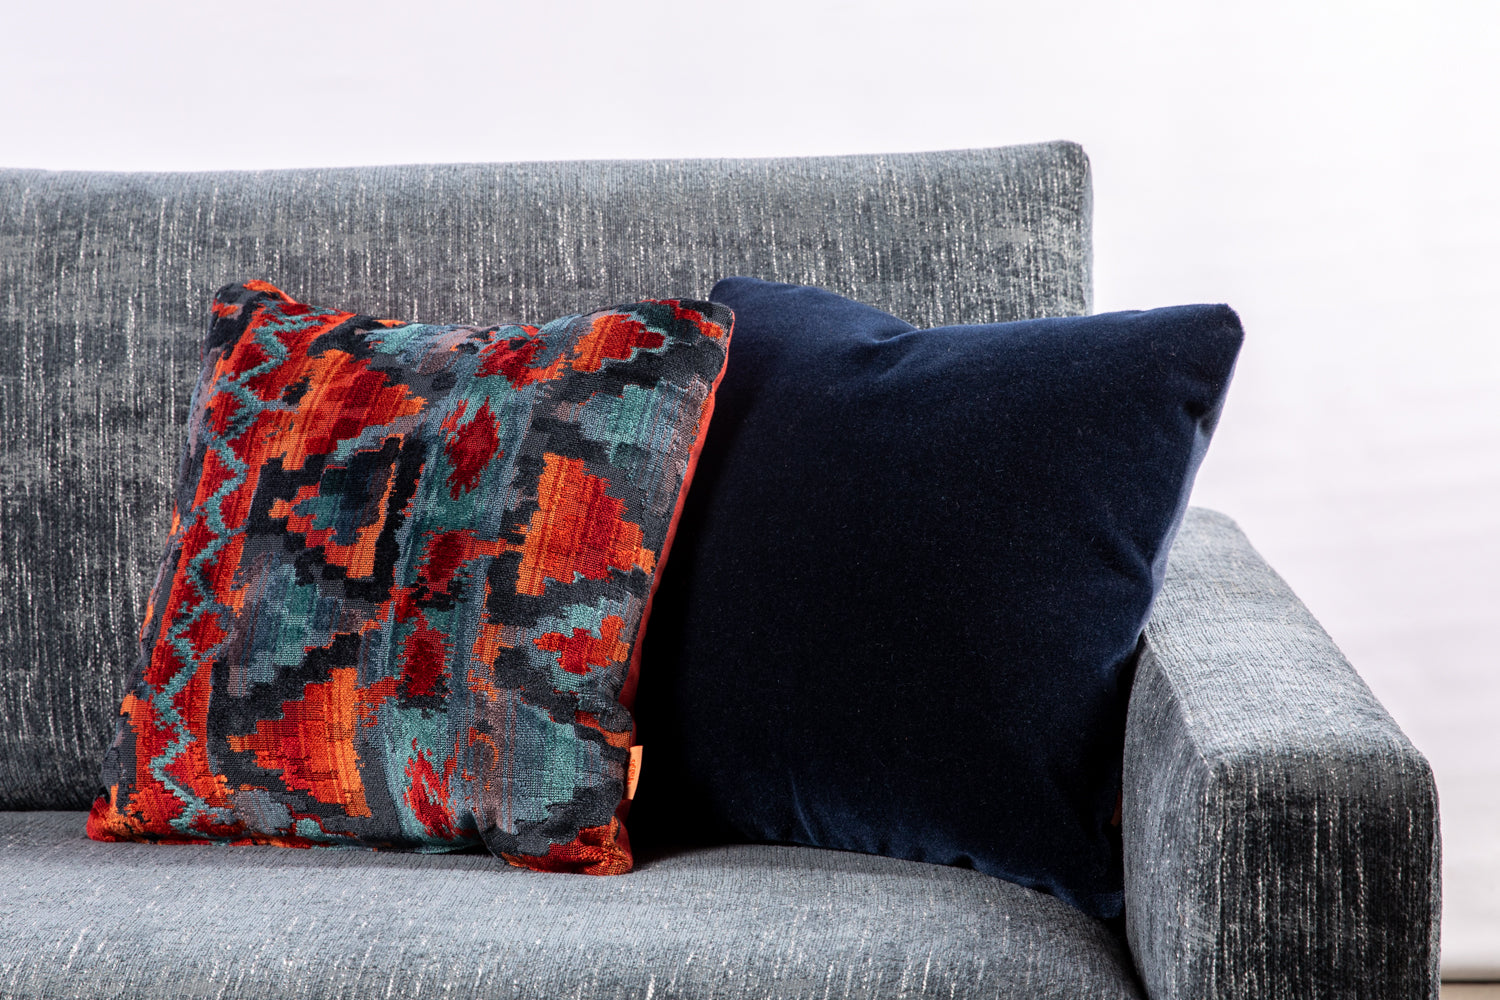 ffabb toss pillows, RADG fabric, velvet & mohair